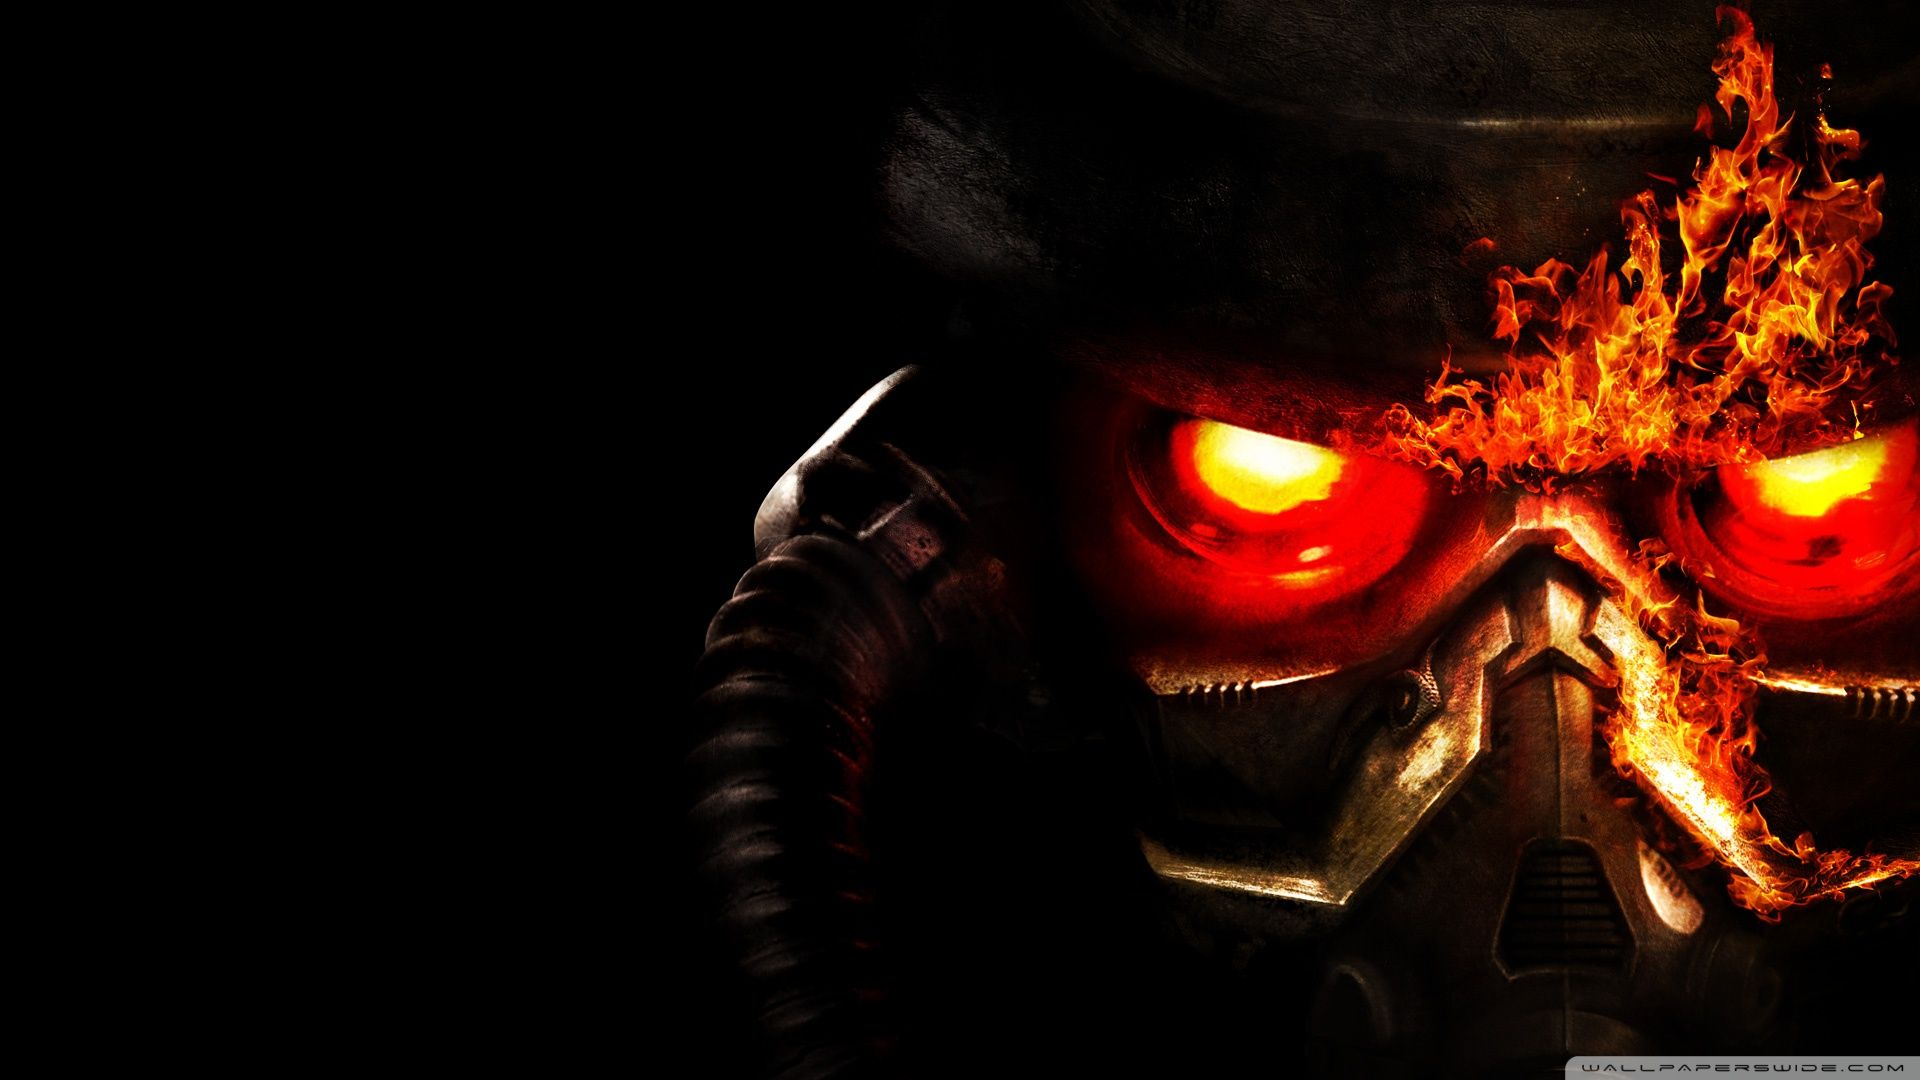 Pin by Aaron Viles on Video Game Series Hd wallpapers